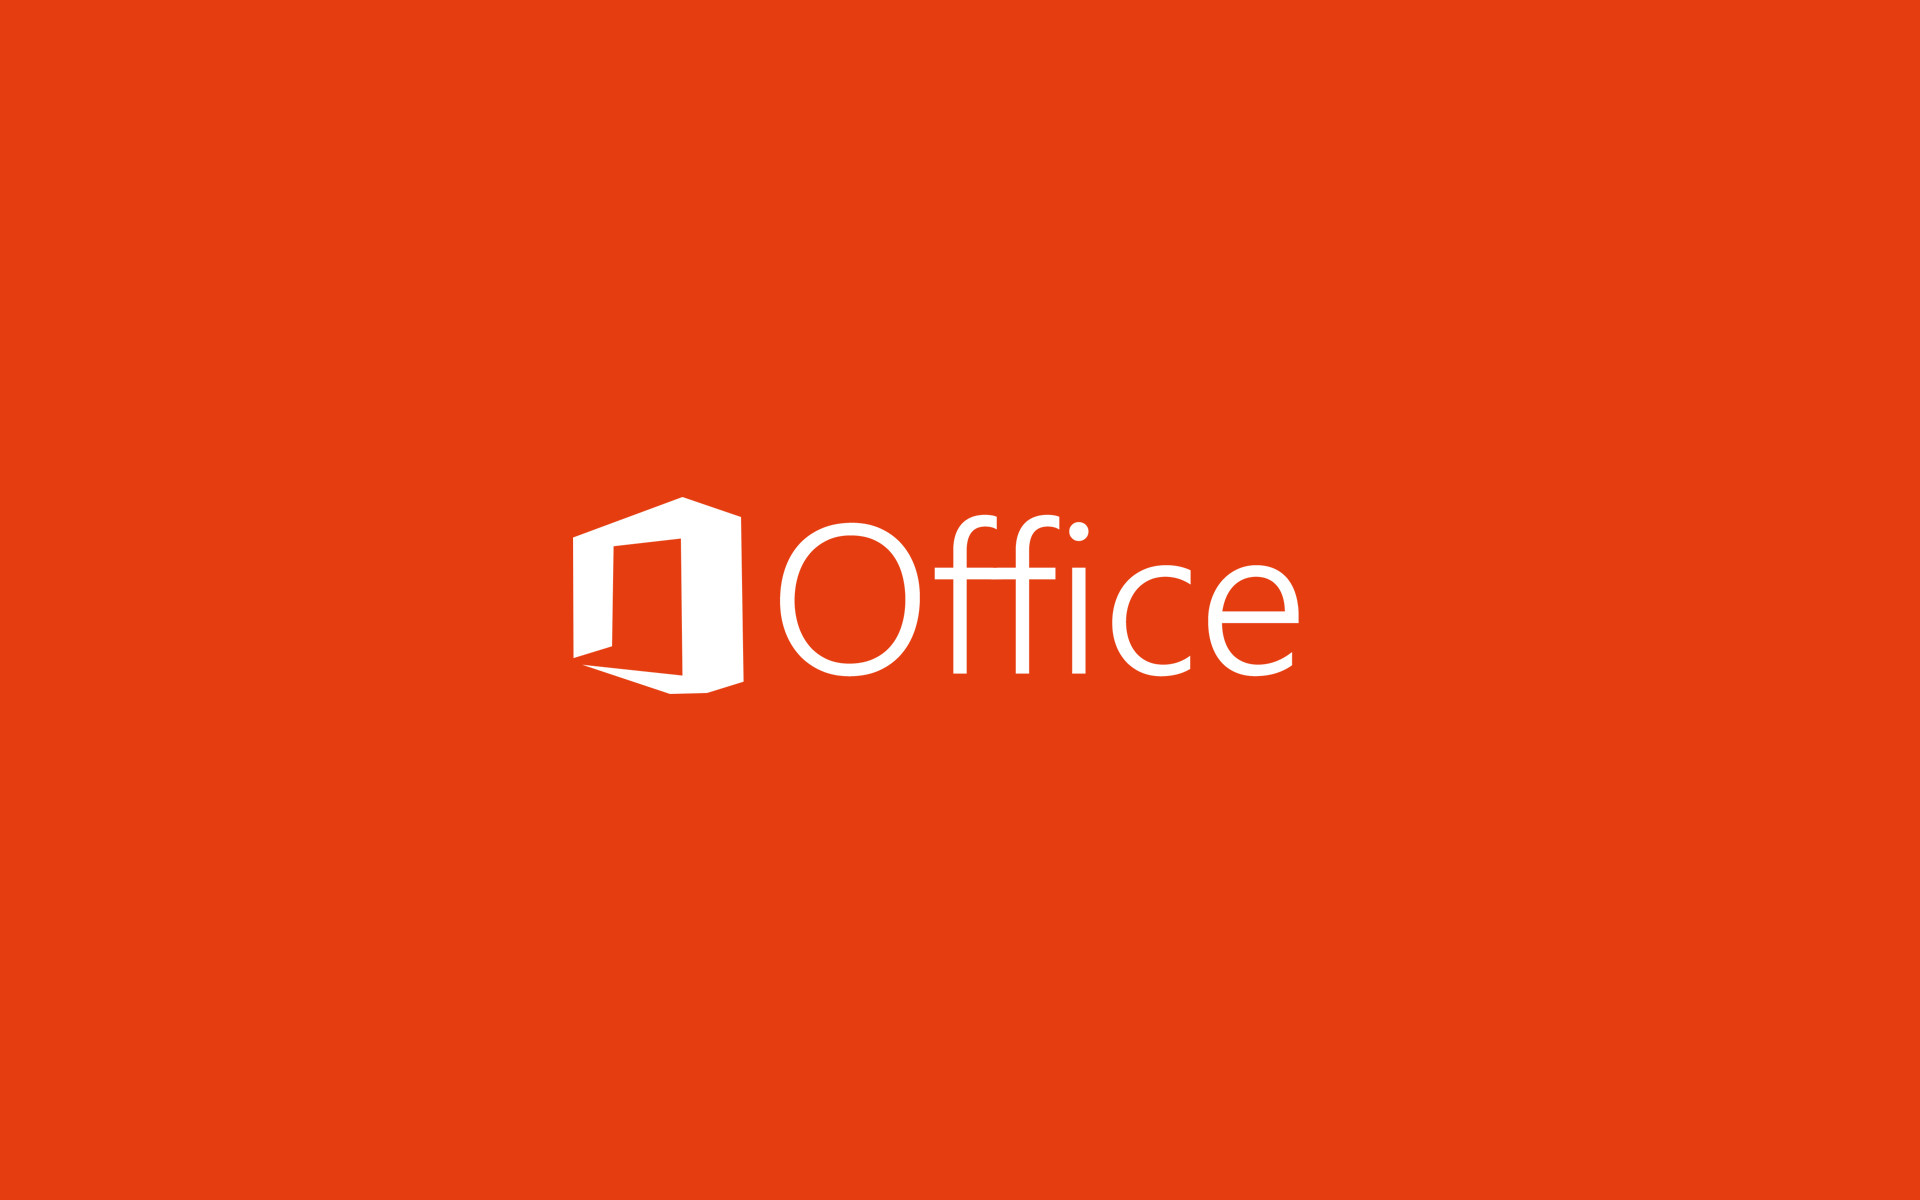 Microsoft Office Wallpaper Themes 84 Images